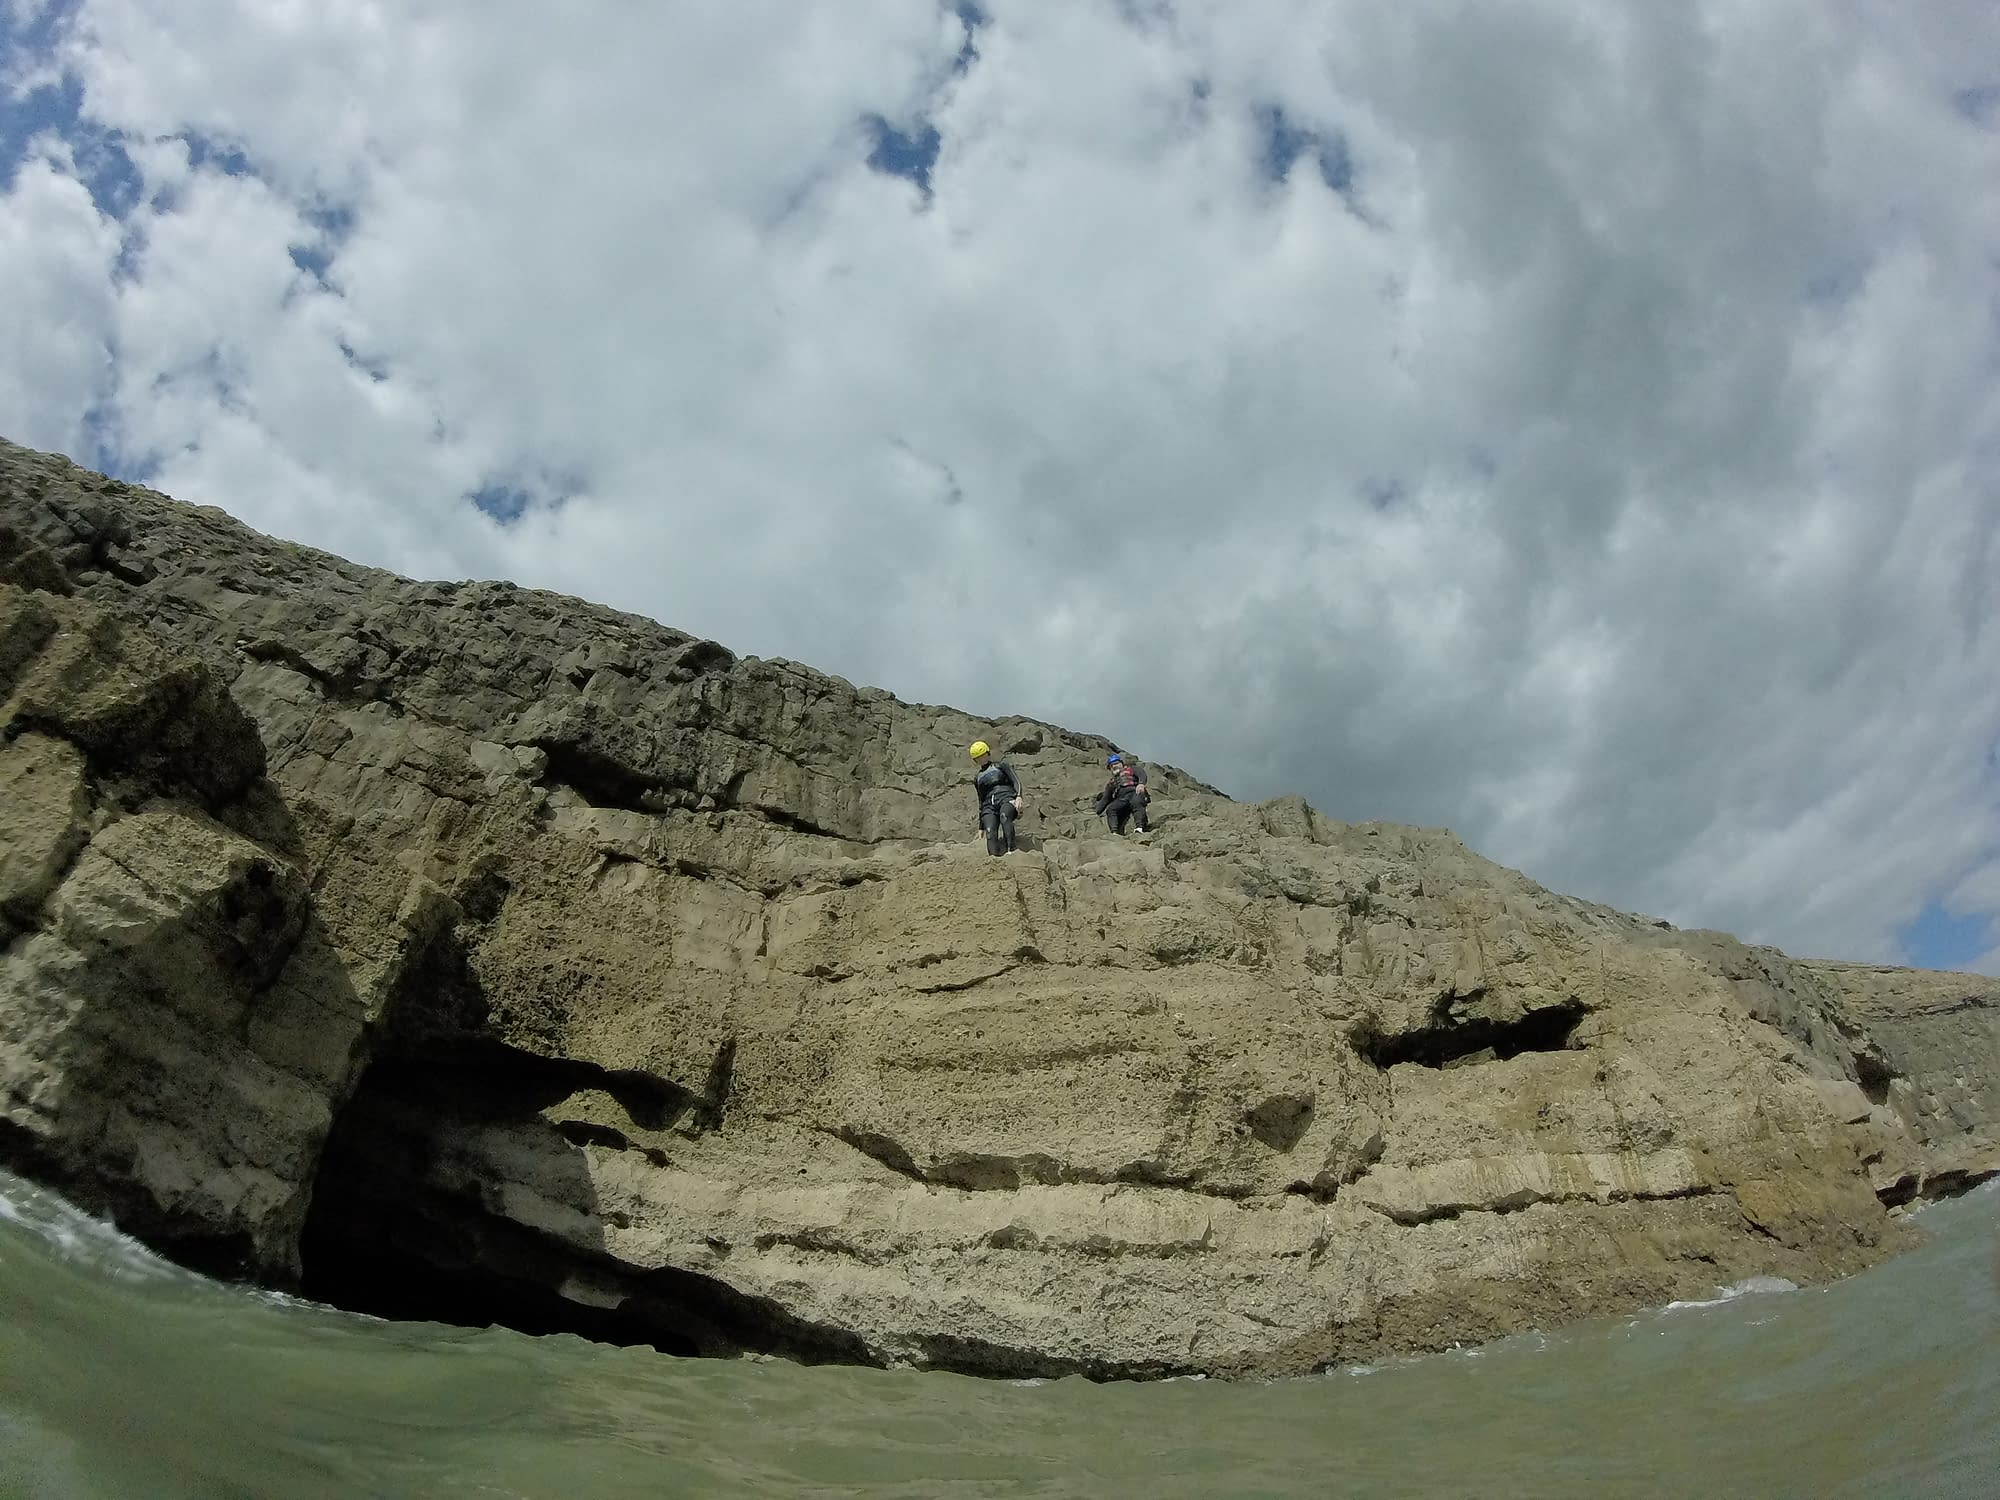 South Wales' rugged coastline is perfect for coasteering